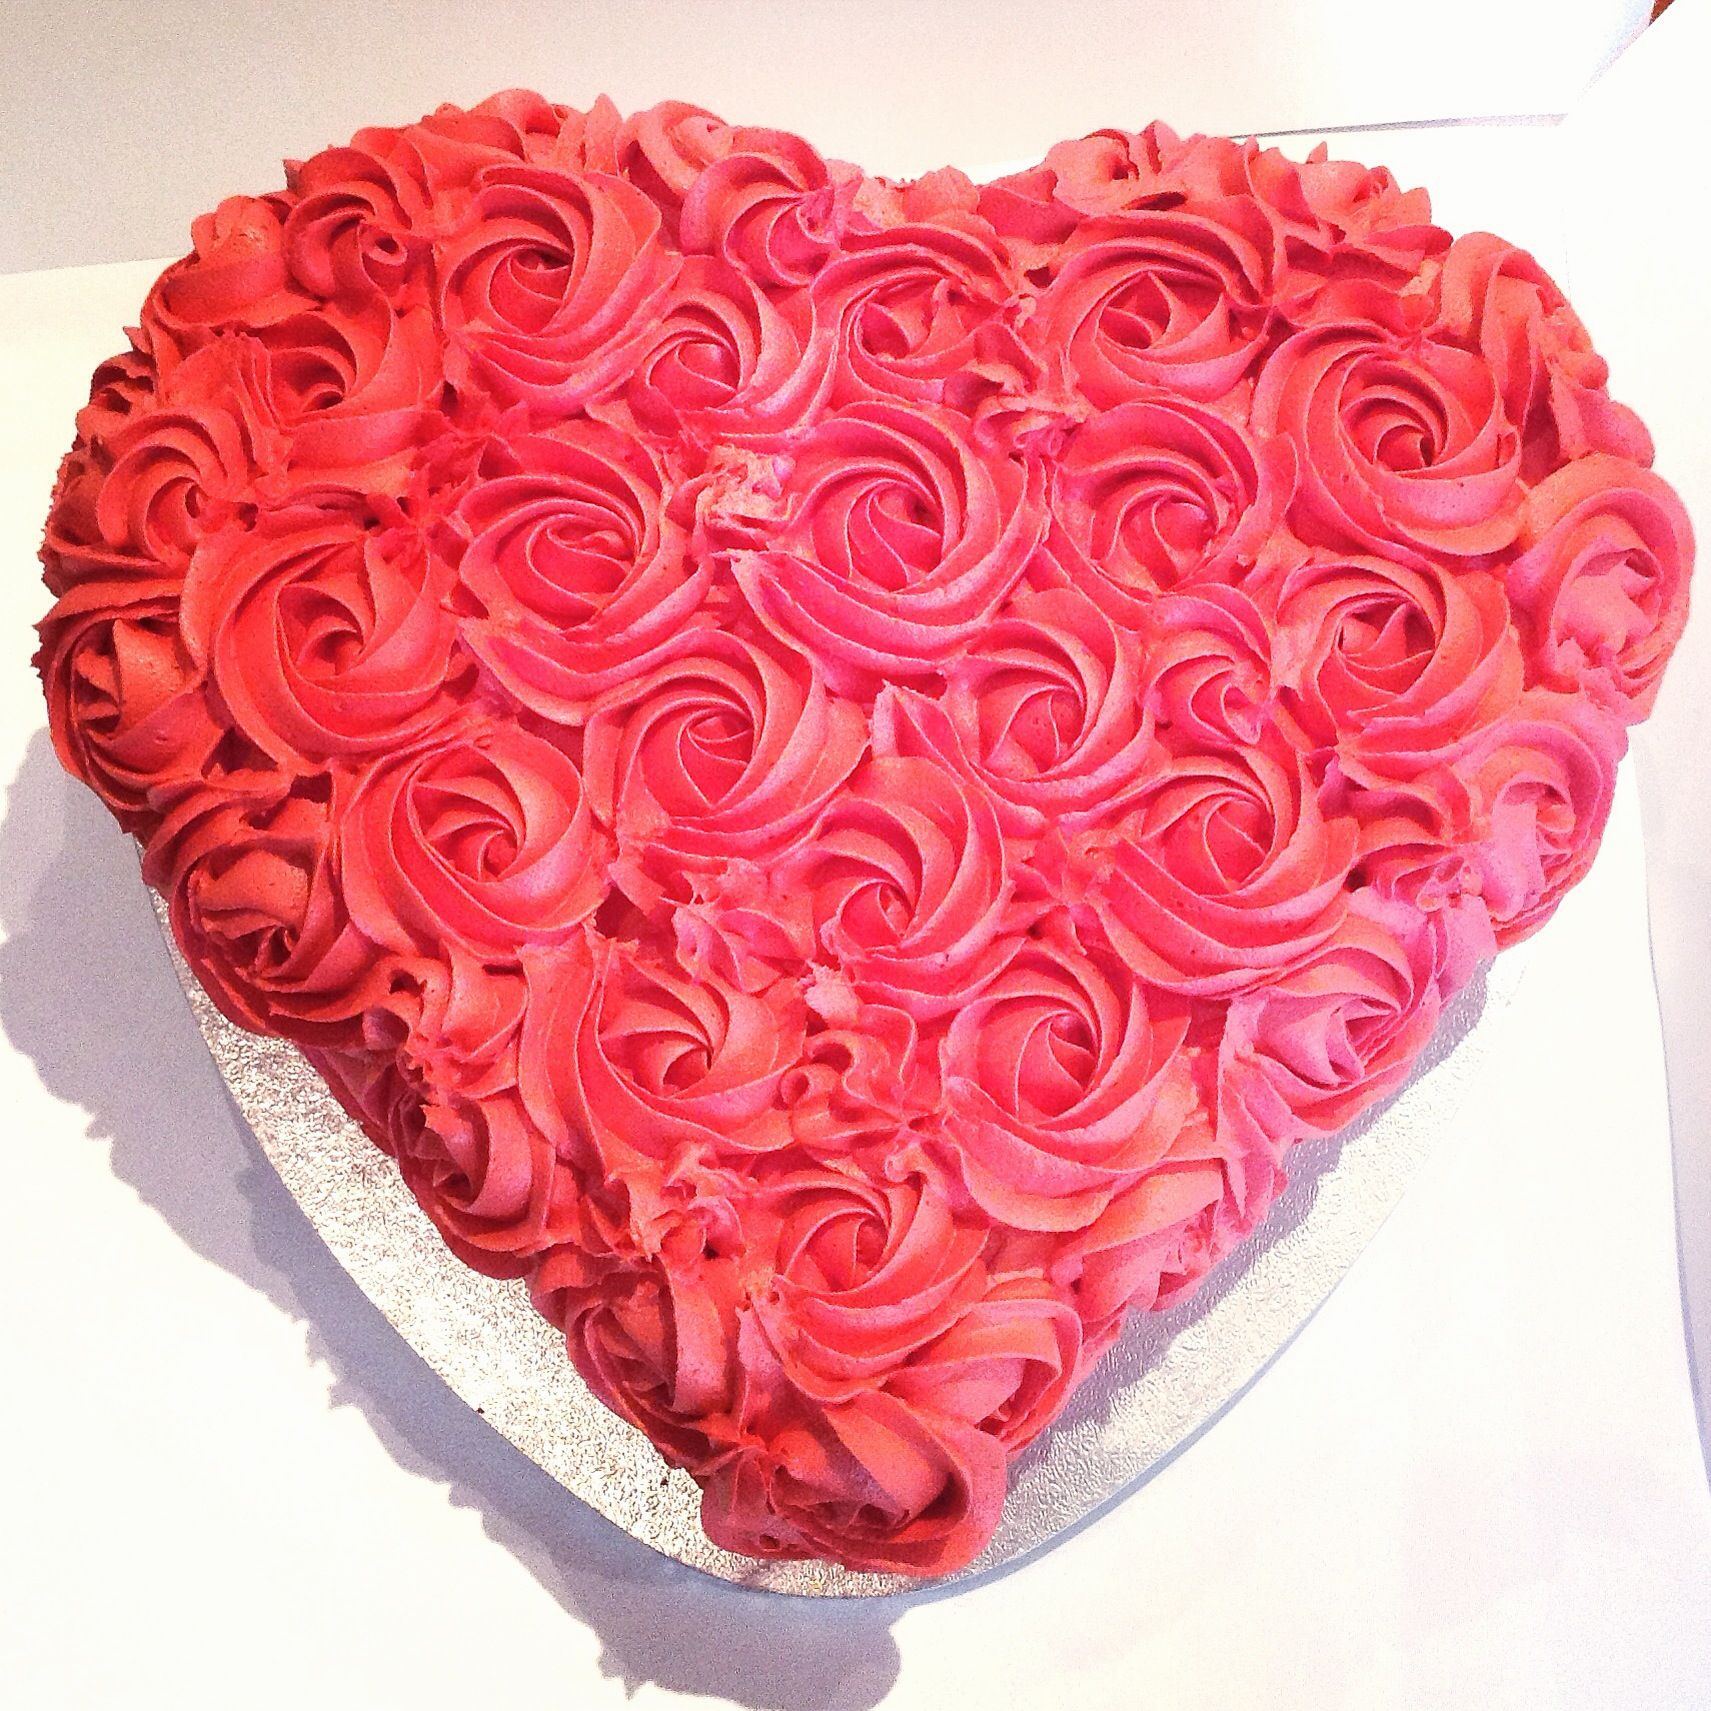 Cake Designs Heart Shaped : Red love heart shaped cake with rosette piping. Red velvet ...